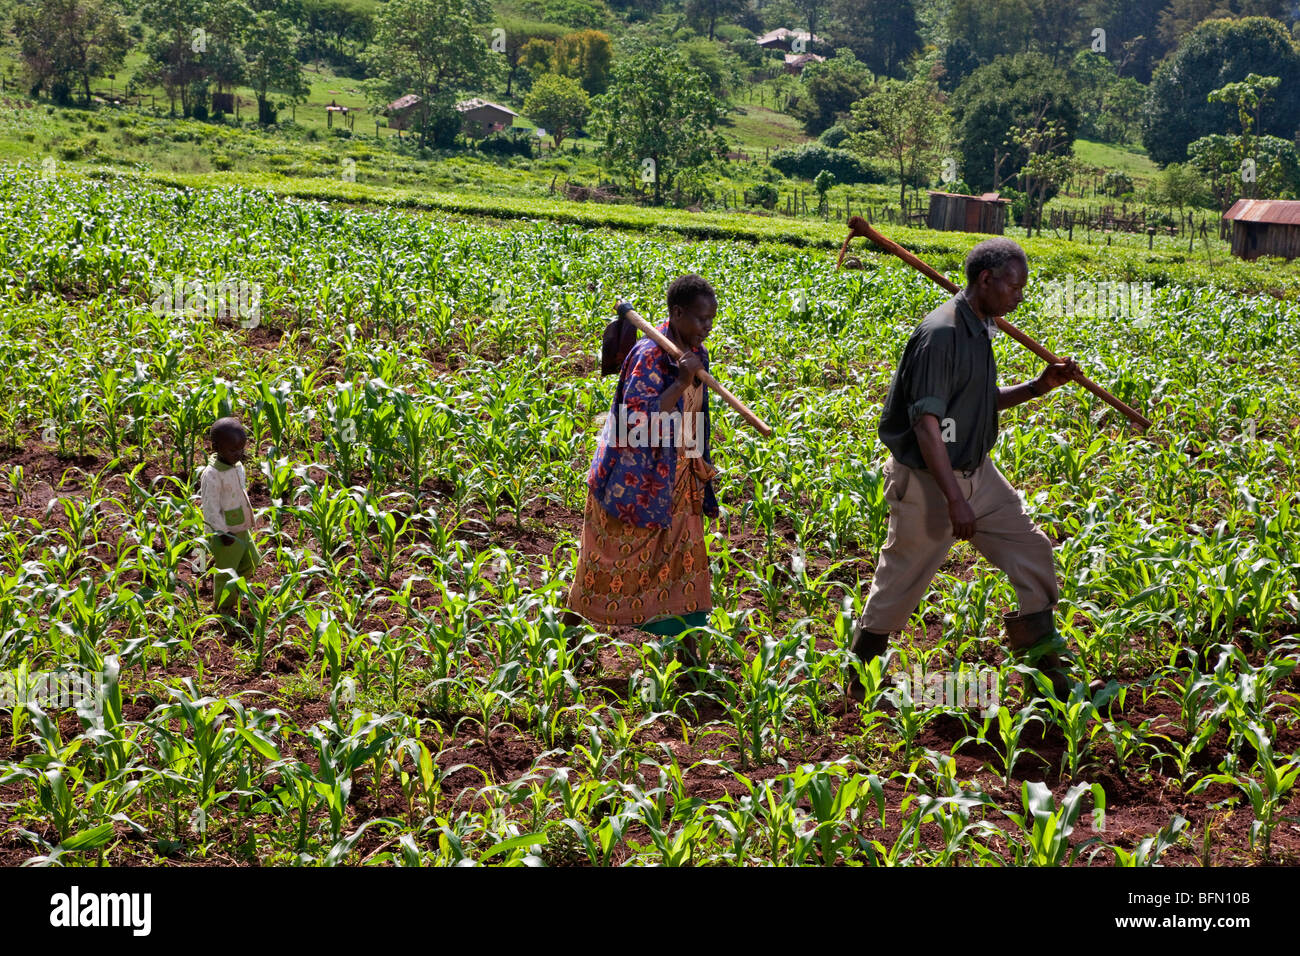 Kenya, Kapsabet District. An elderly couple accompanied by their grandson go home after weeding a field of maize. - Stock Image